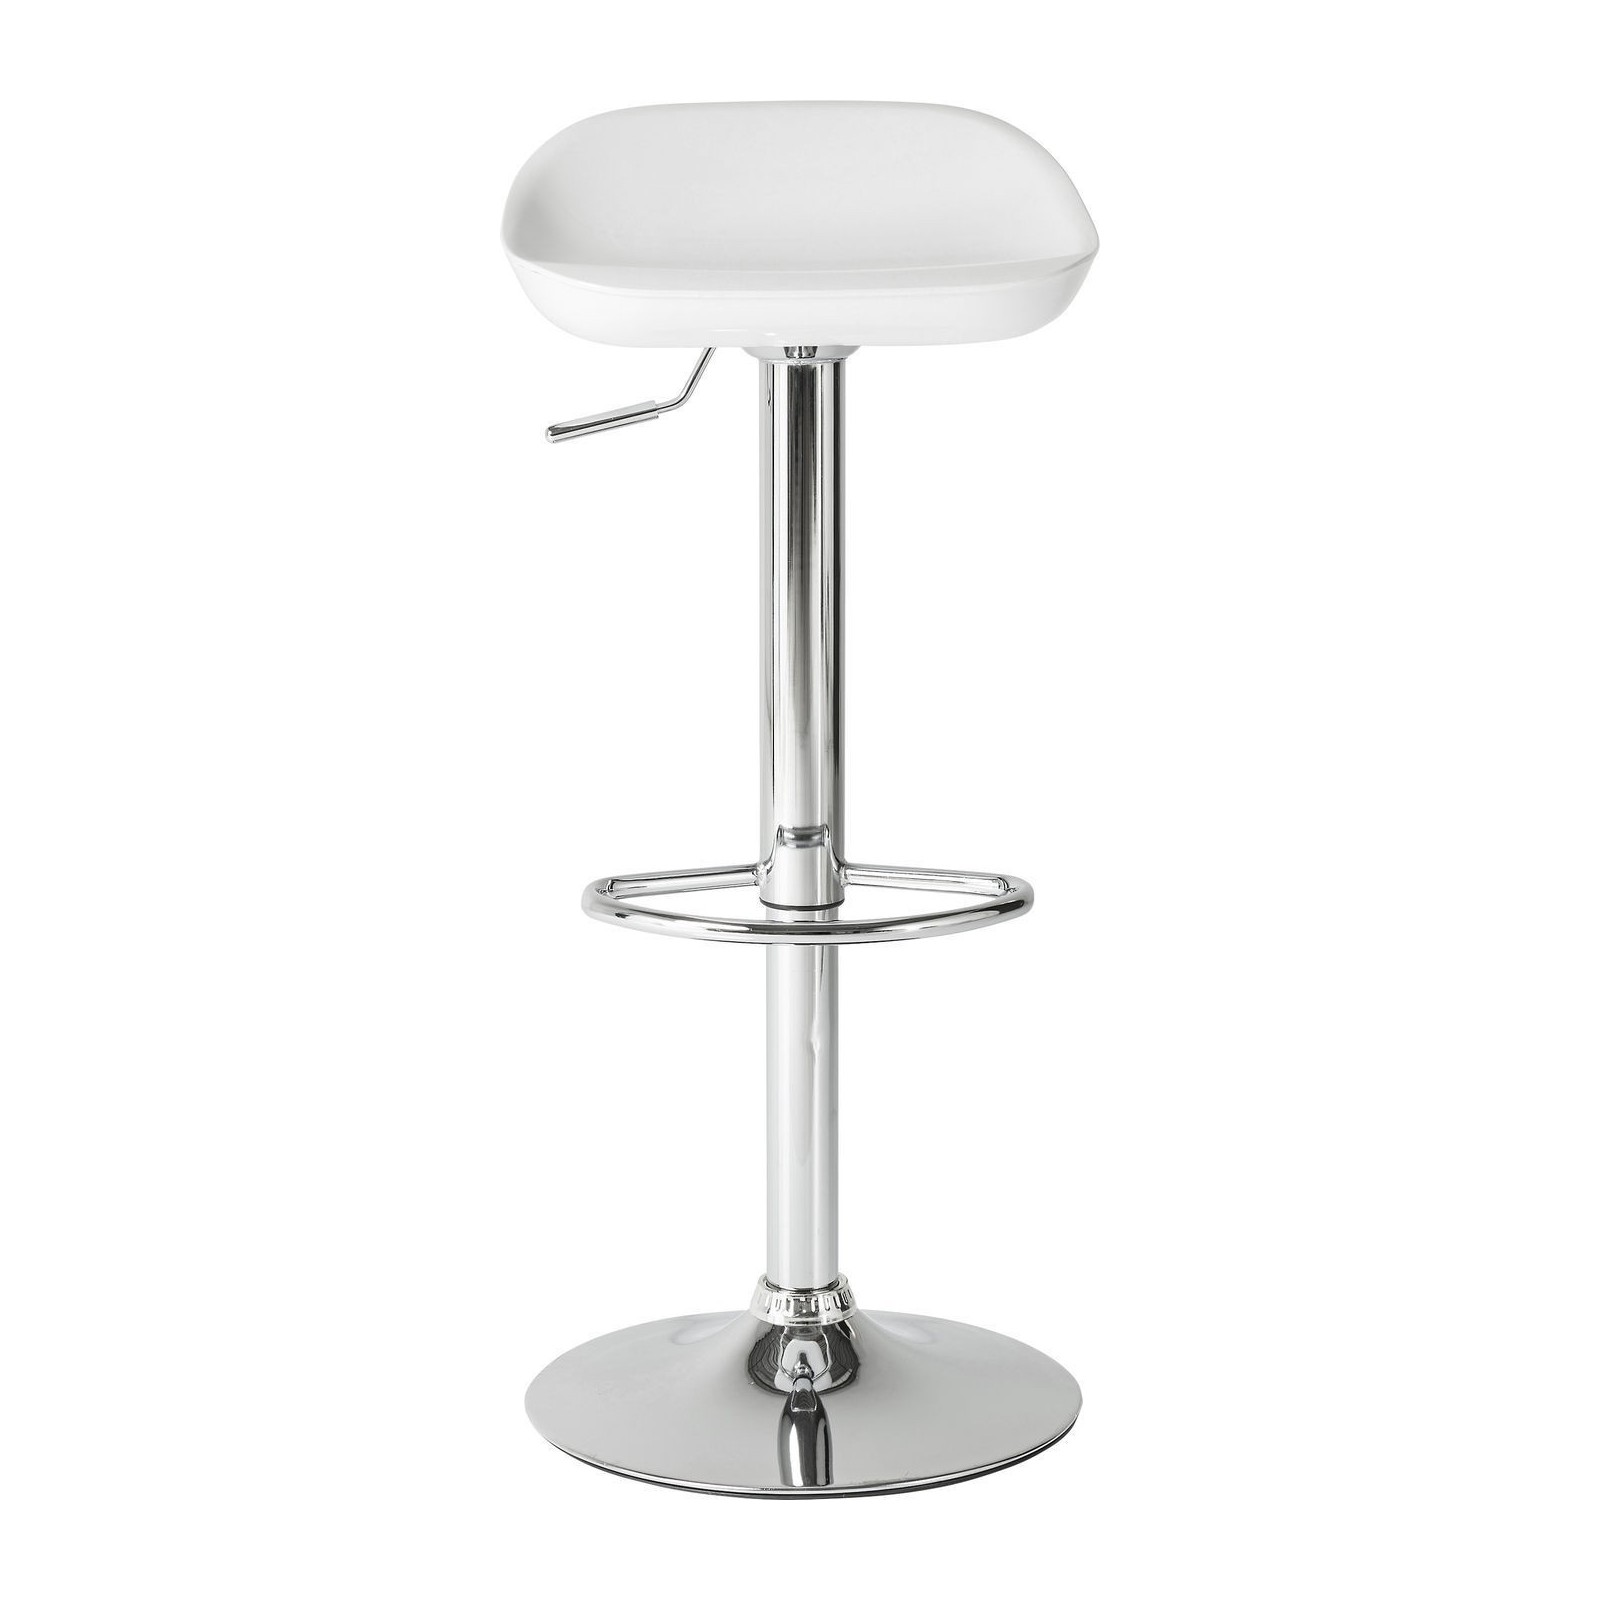 tabouret de bar design blanc bucket kare. Black Bedroom Furniture Sets. Home Design Ideas